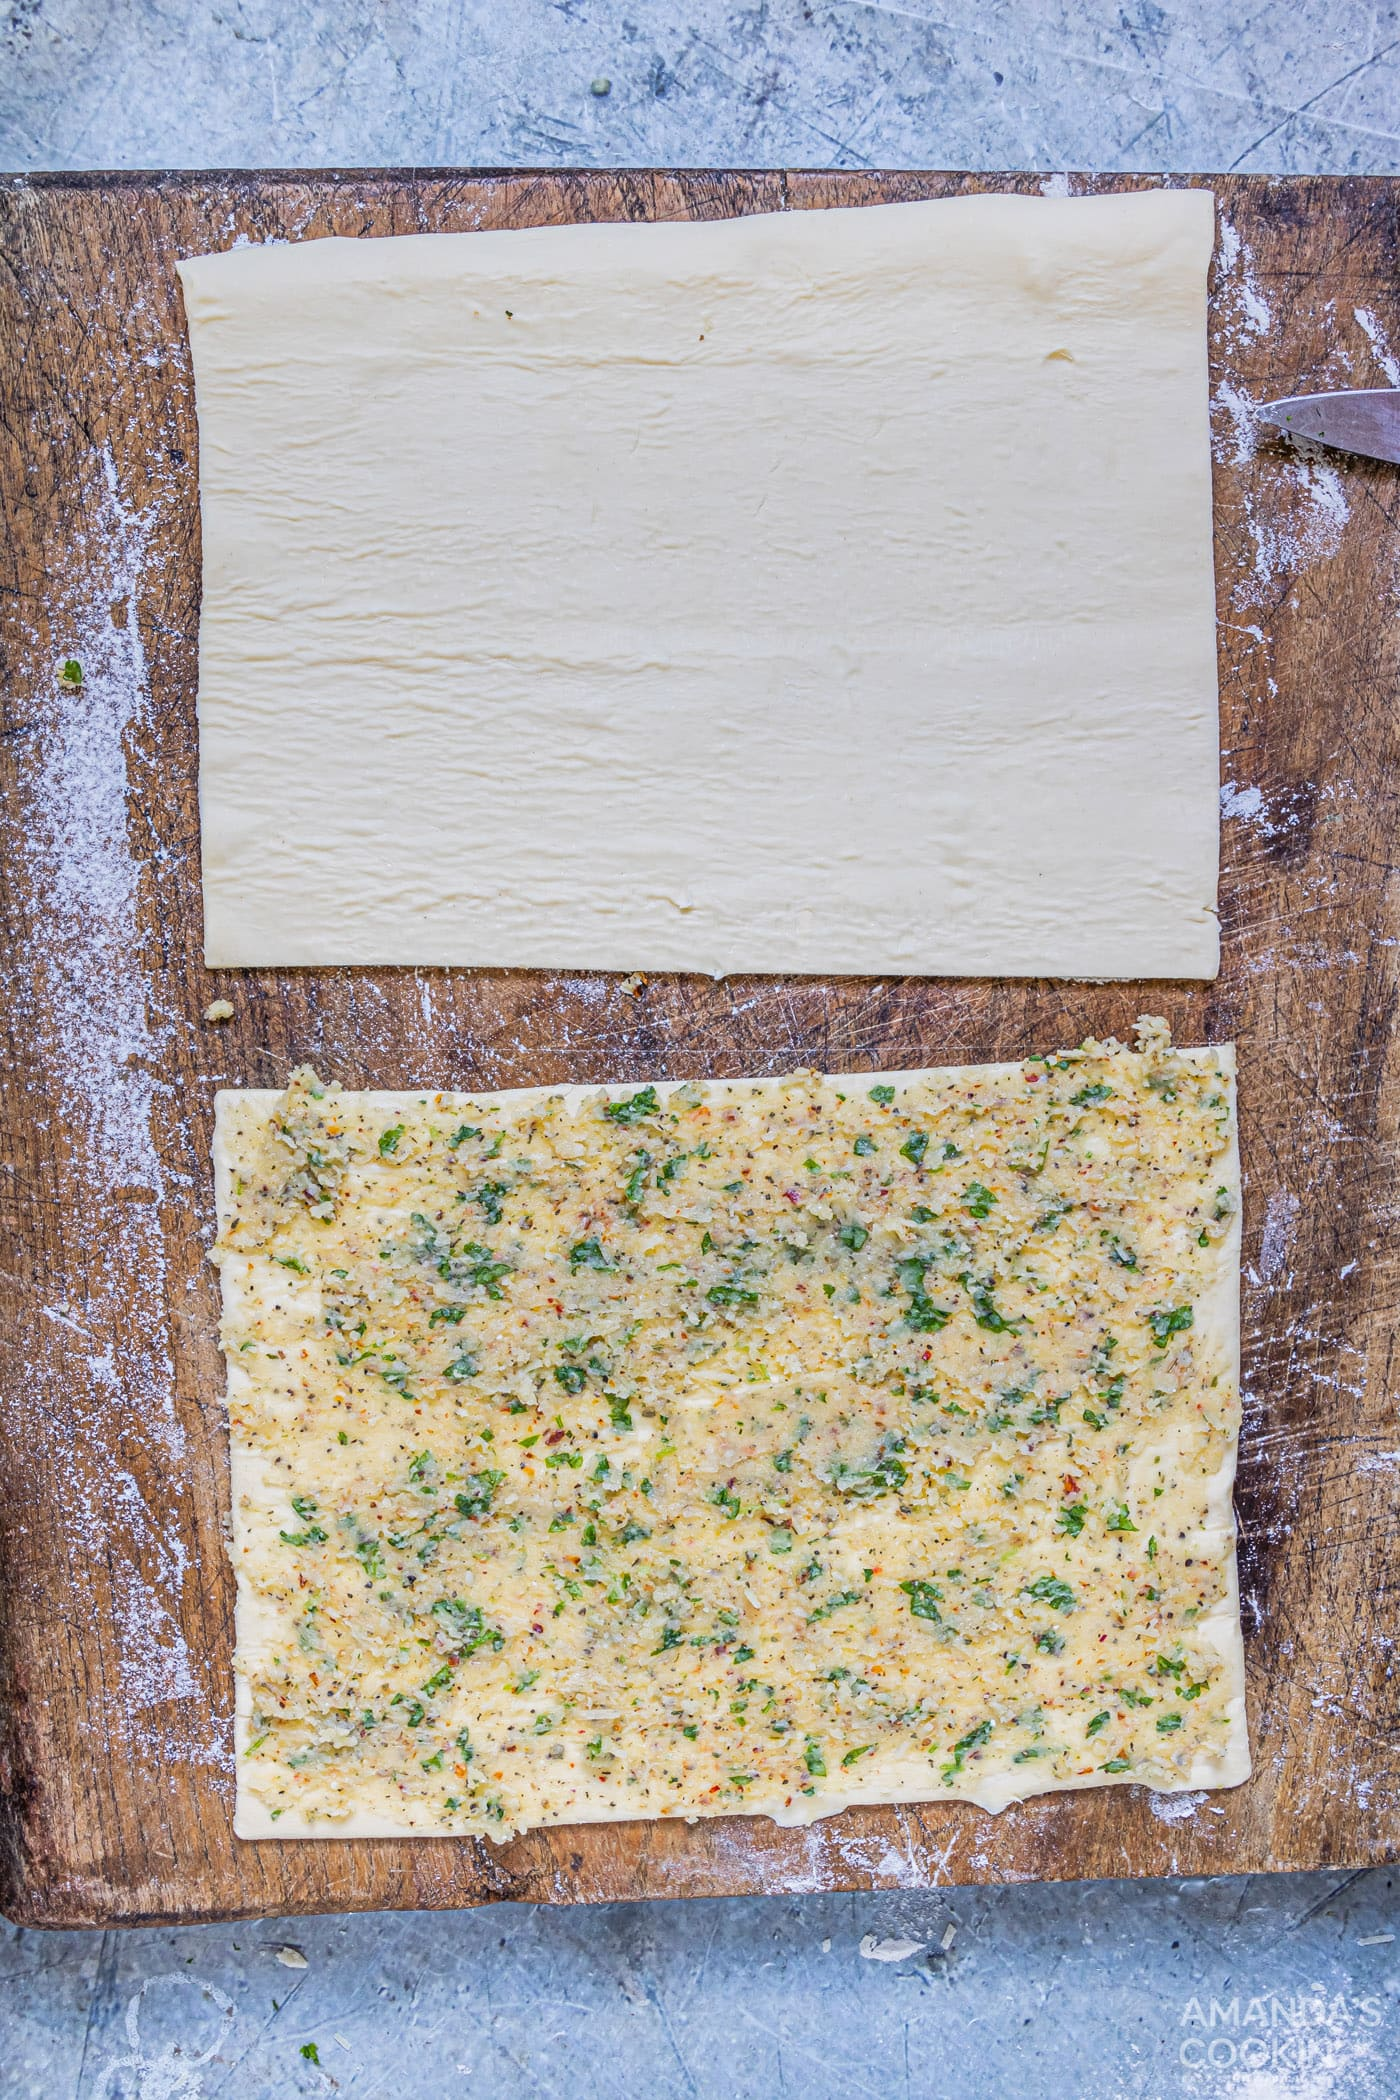 garlic butter smeared onto puff pastry sheet